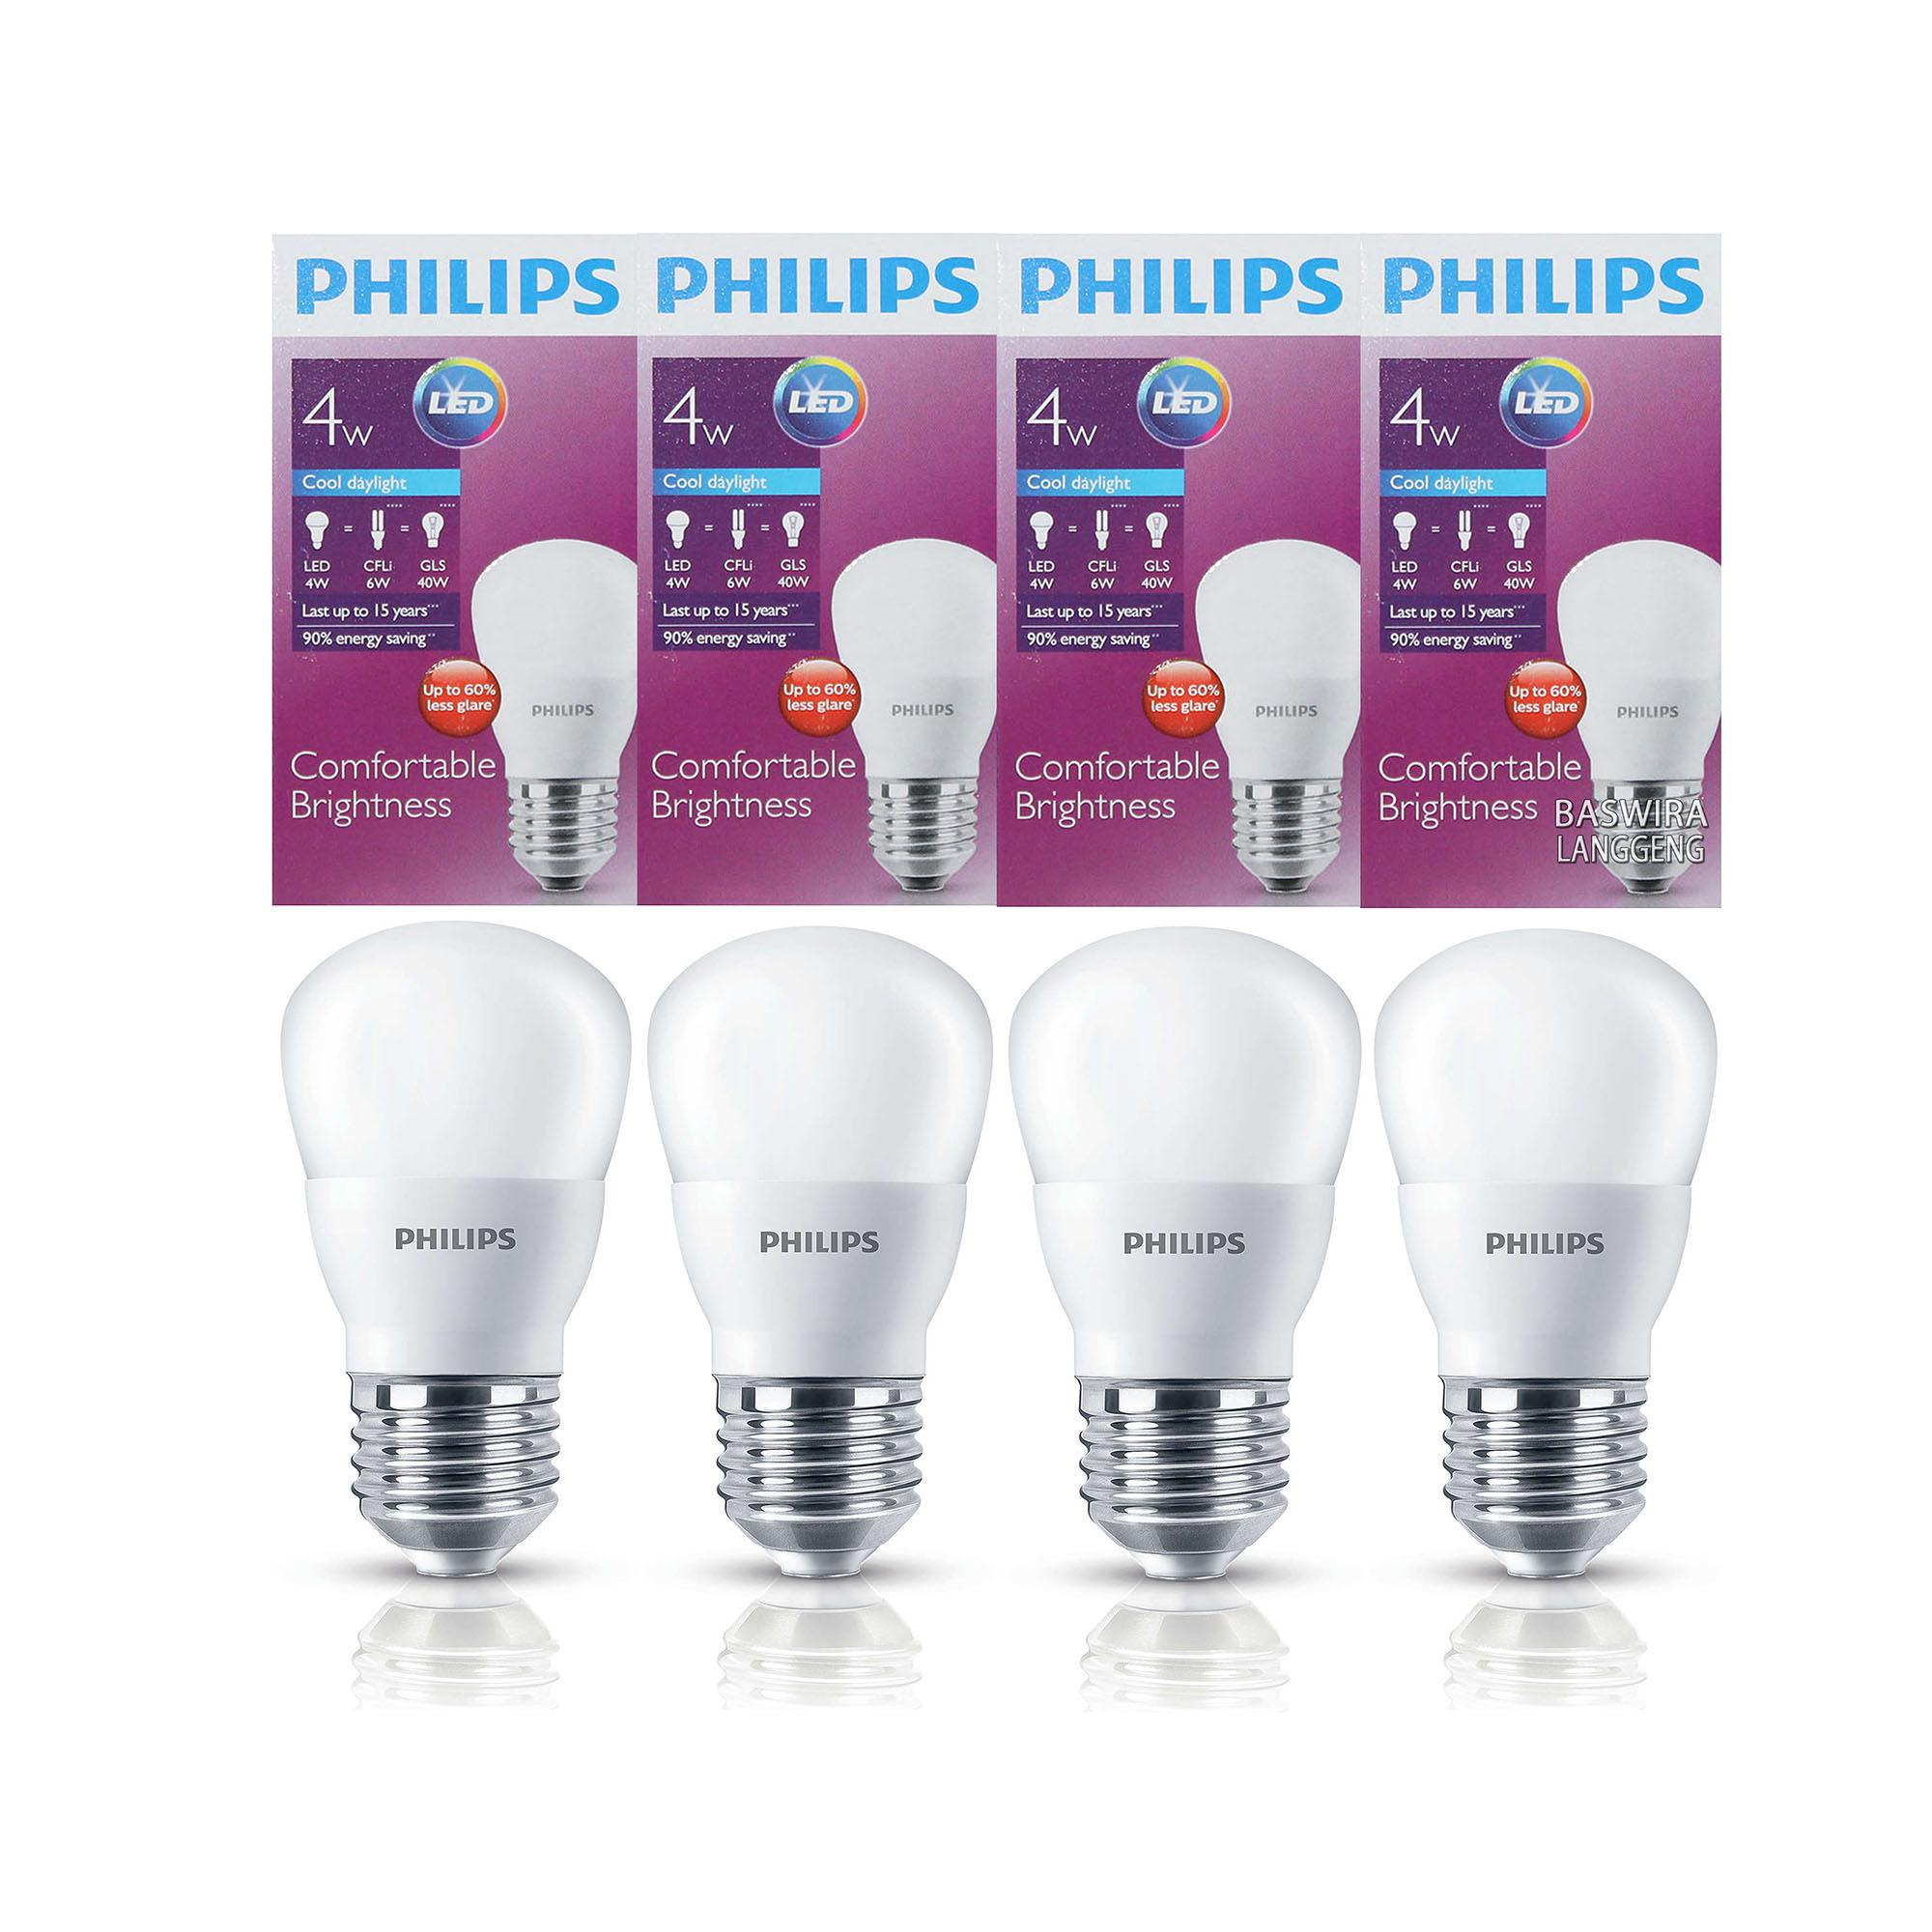 Jual Lampu Bohlam Bulb Buy 1 Get Free Usb Led 5 Watt Emergency Philips 4 W 4wat 4w Putih Paket Pcs